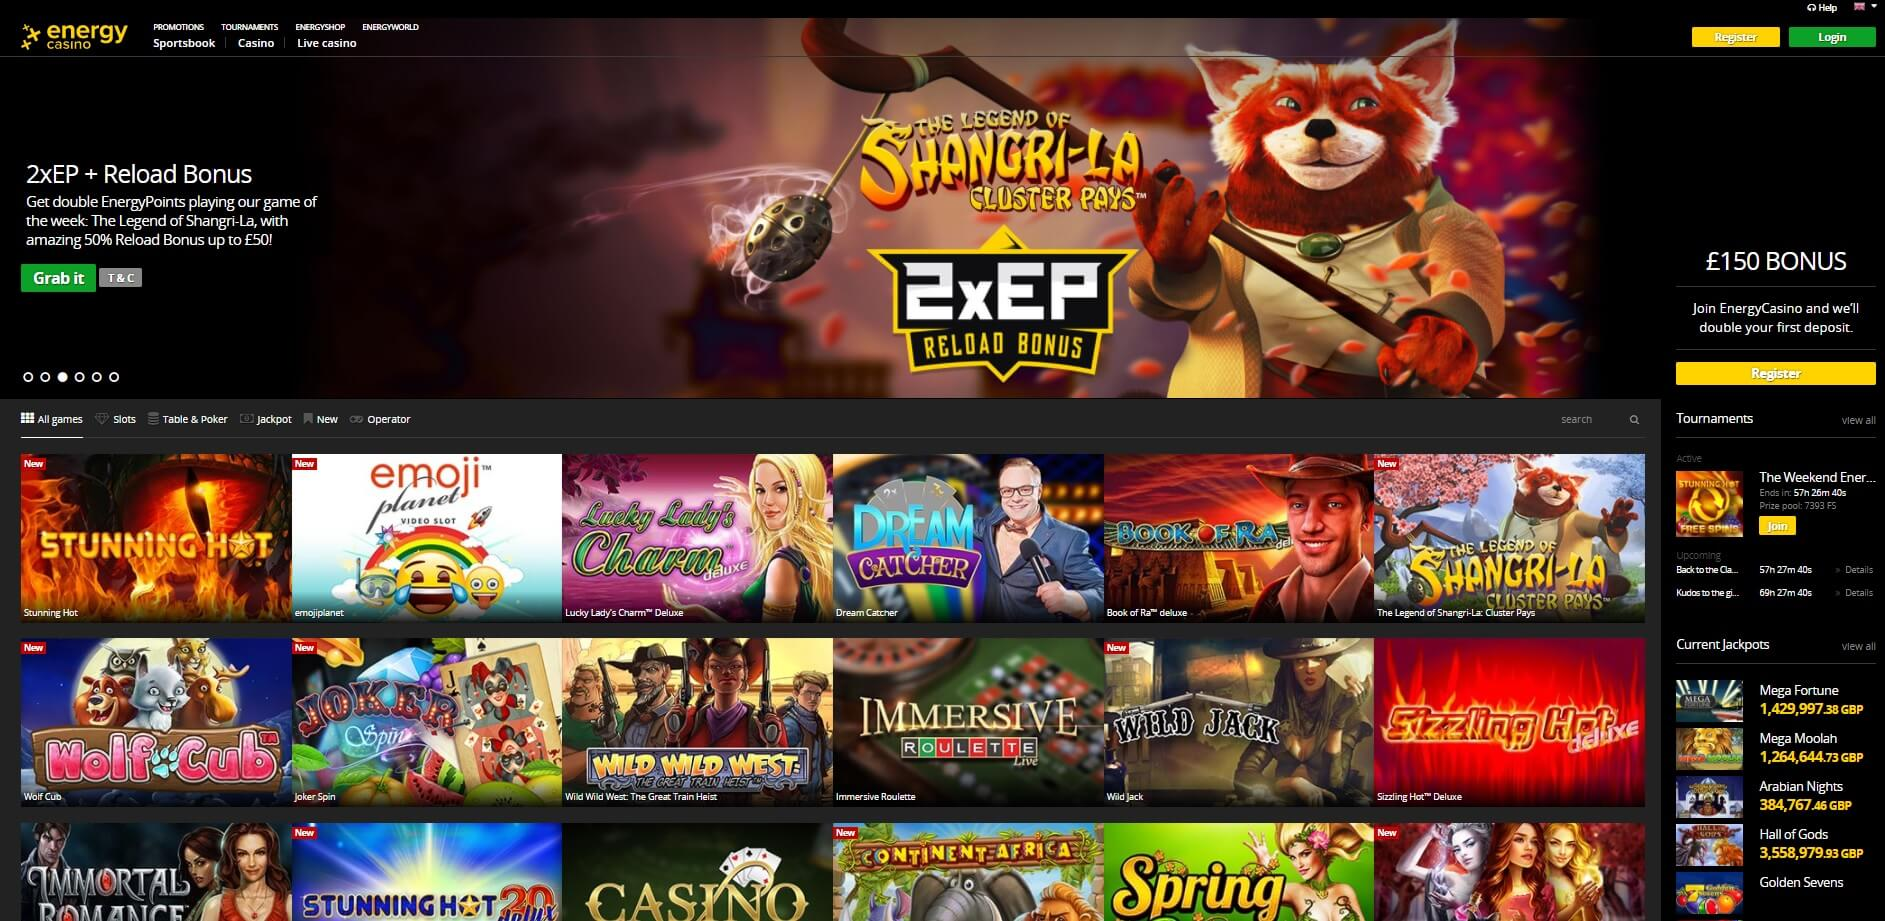 energy casino games and slot